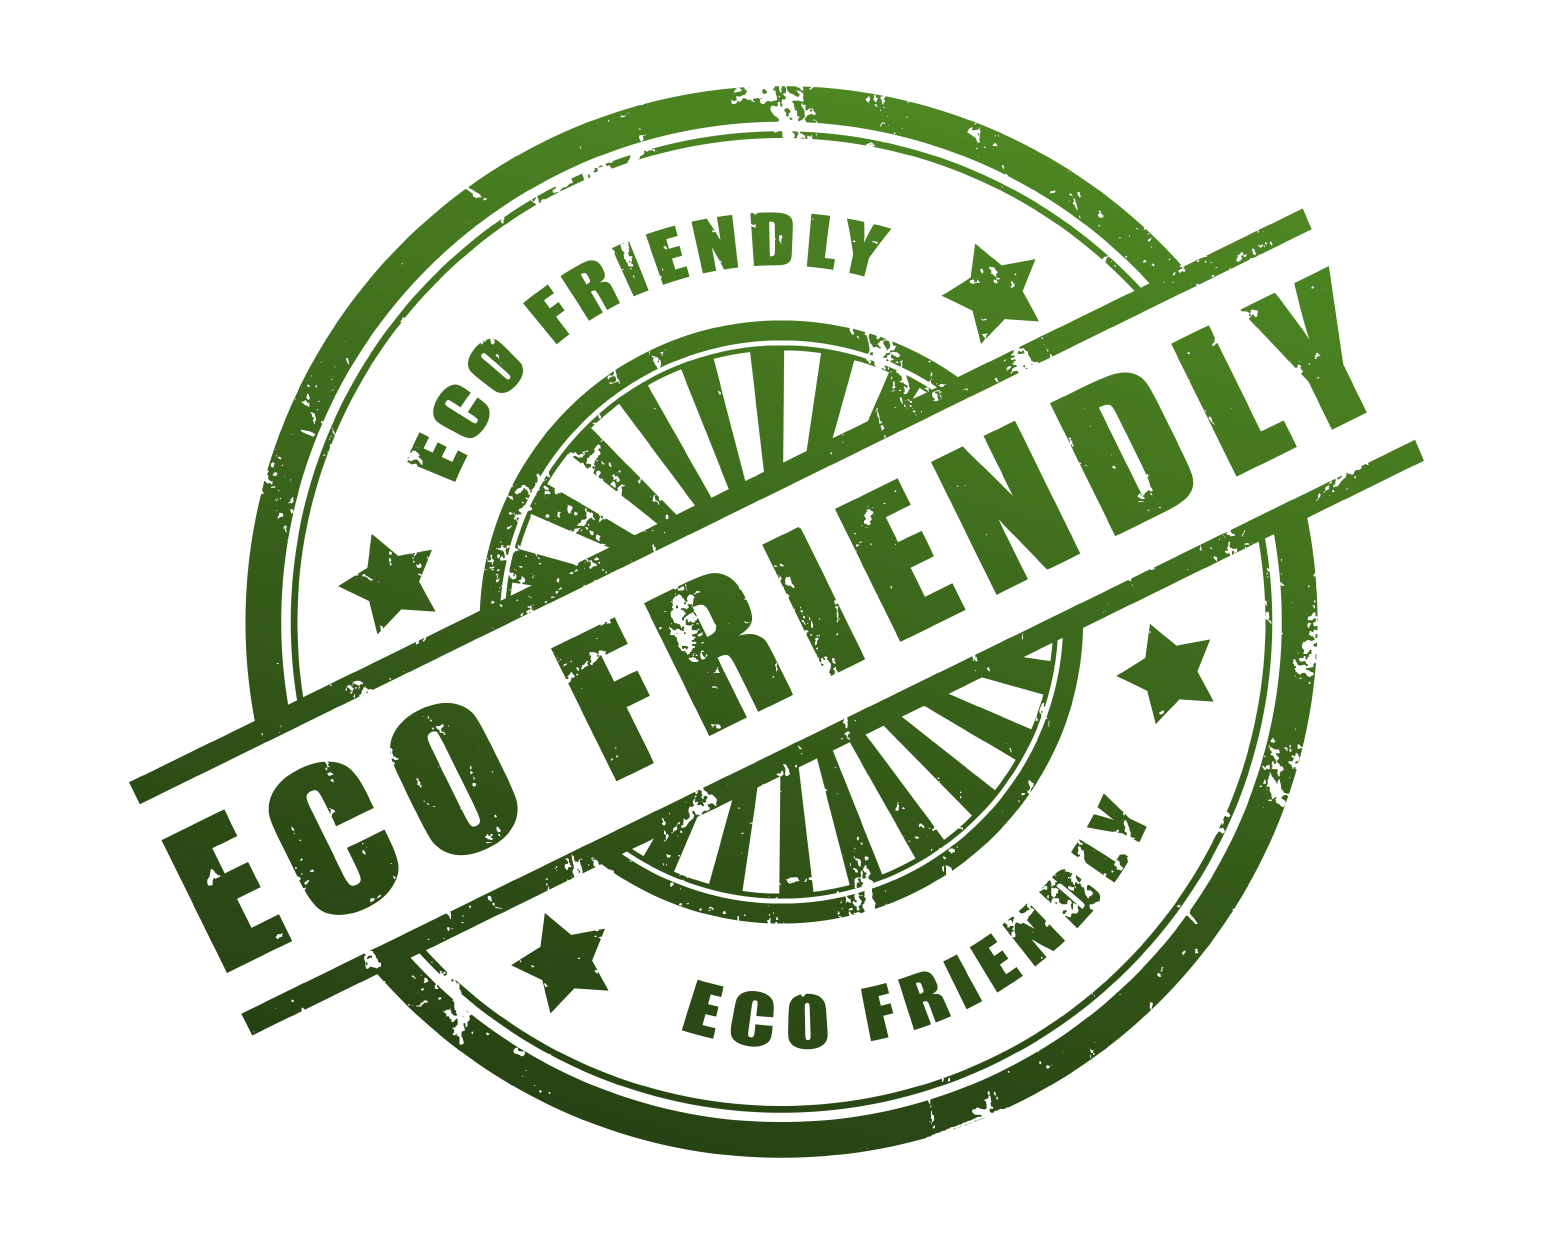 List of 6 Eco Friendly Products